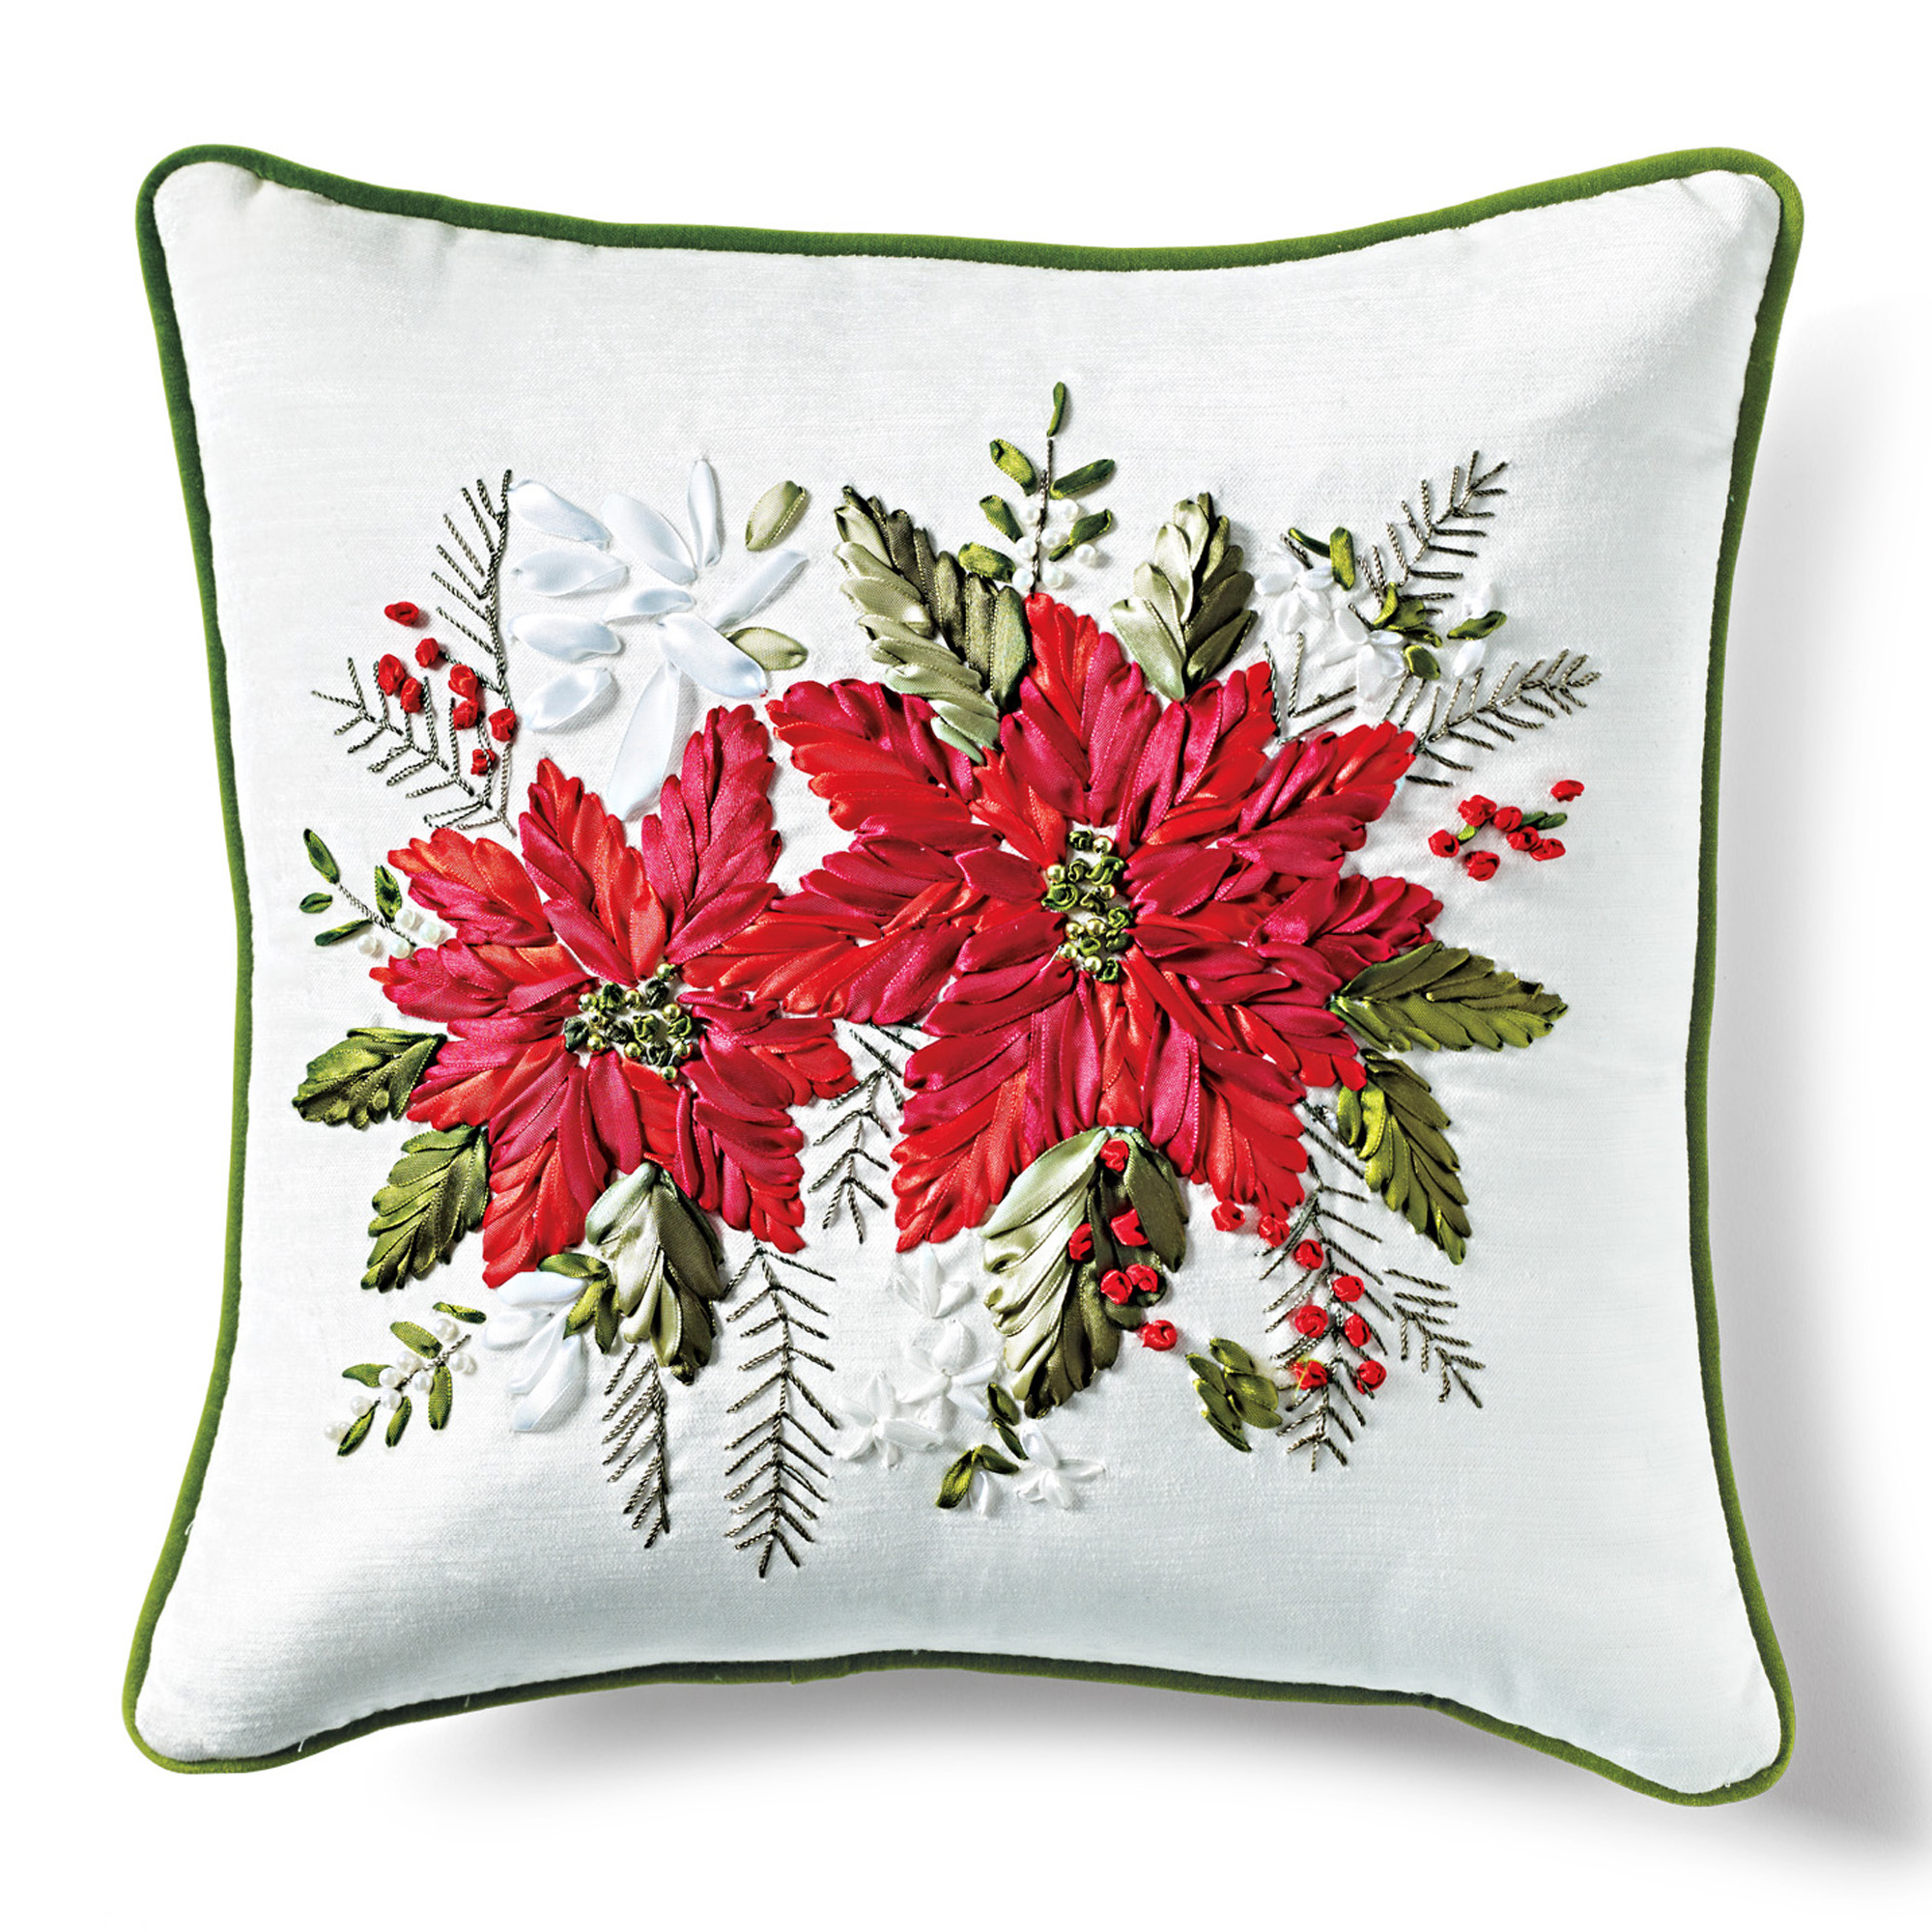 Poinsettias Hand-Stitched Holiday Pillow